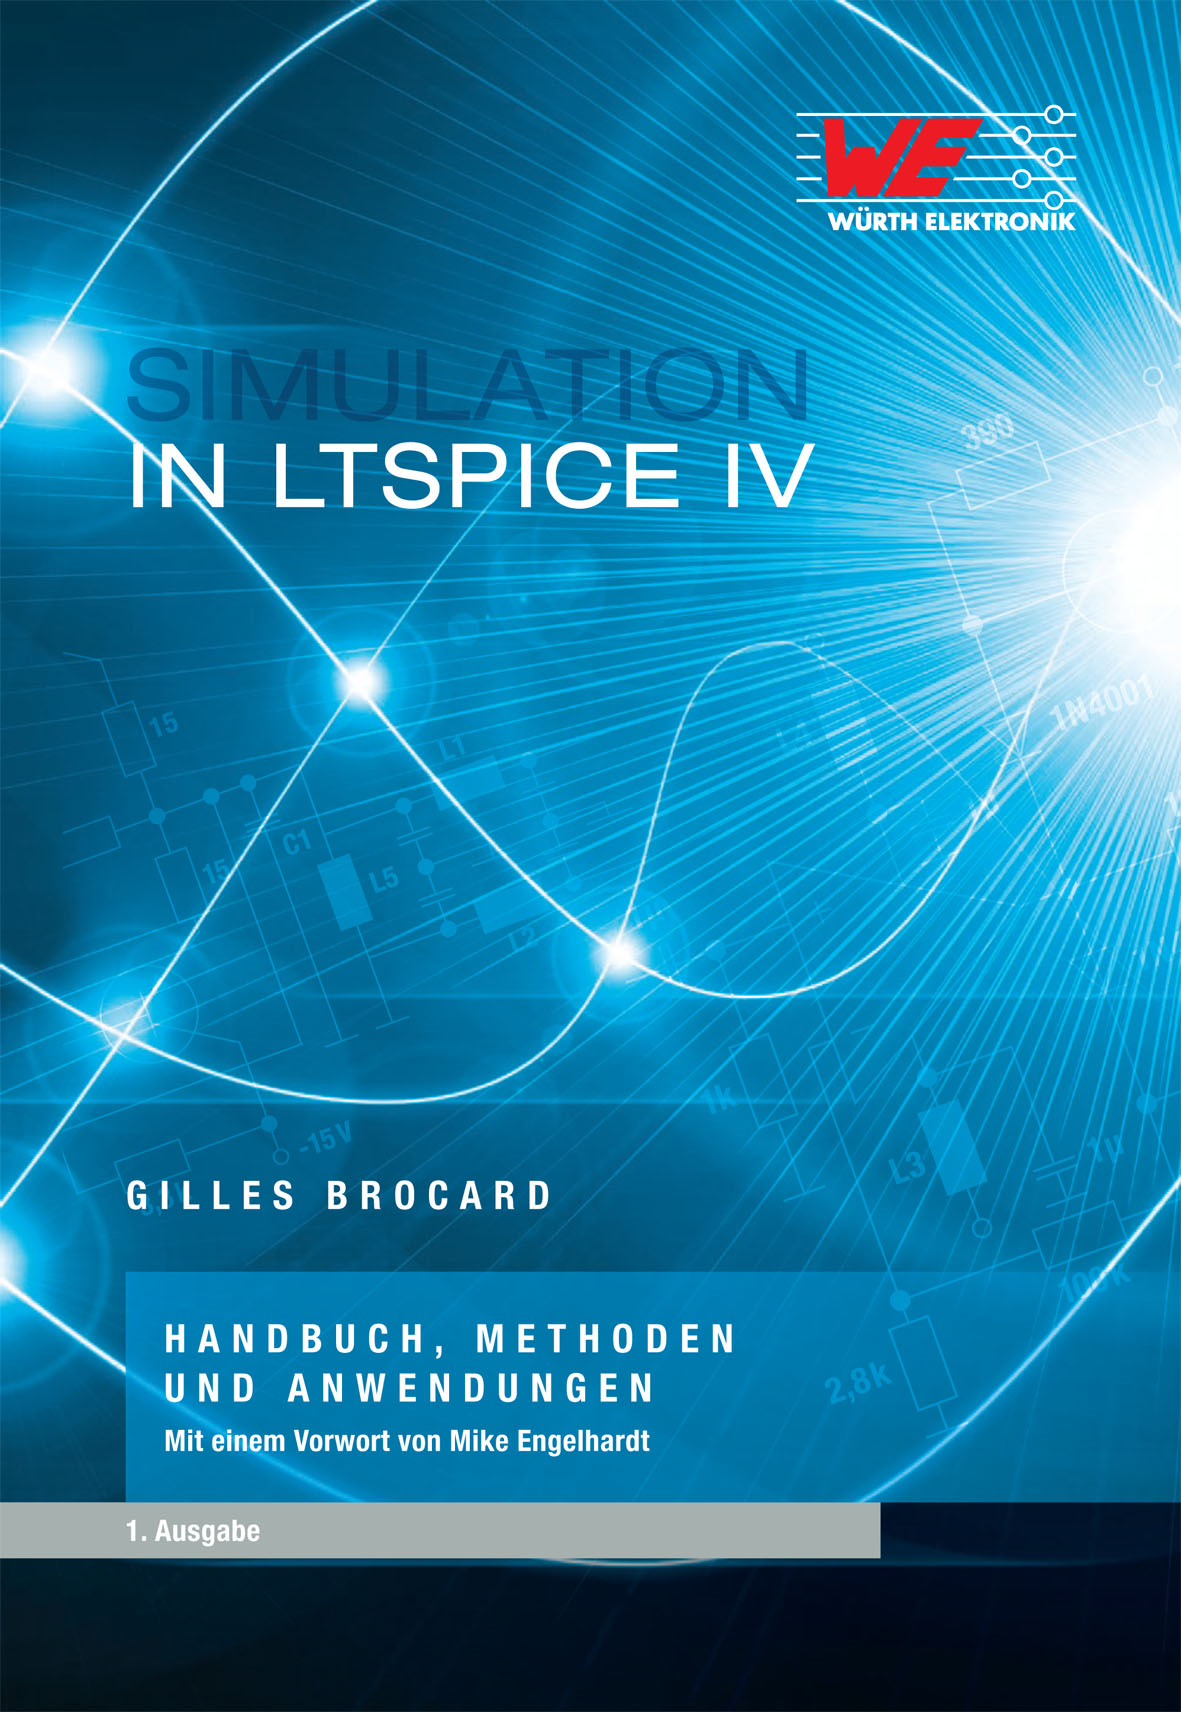 Gilles Brocard: Simulation in LTspice IV